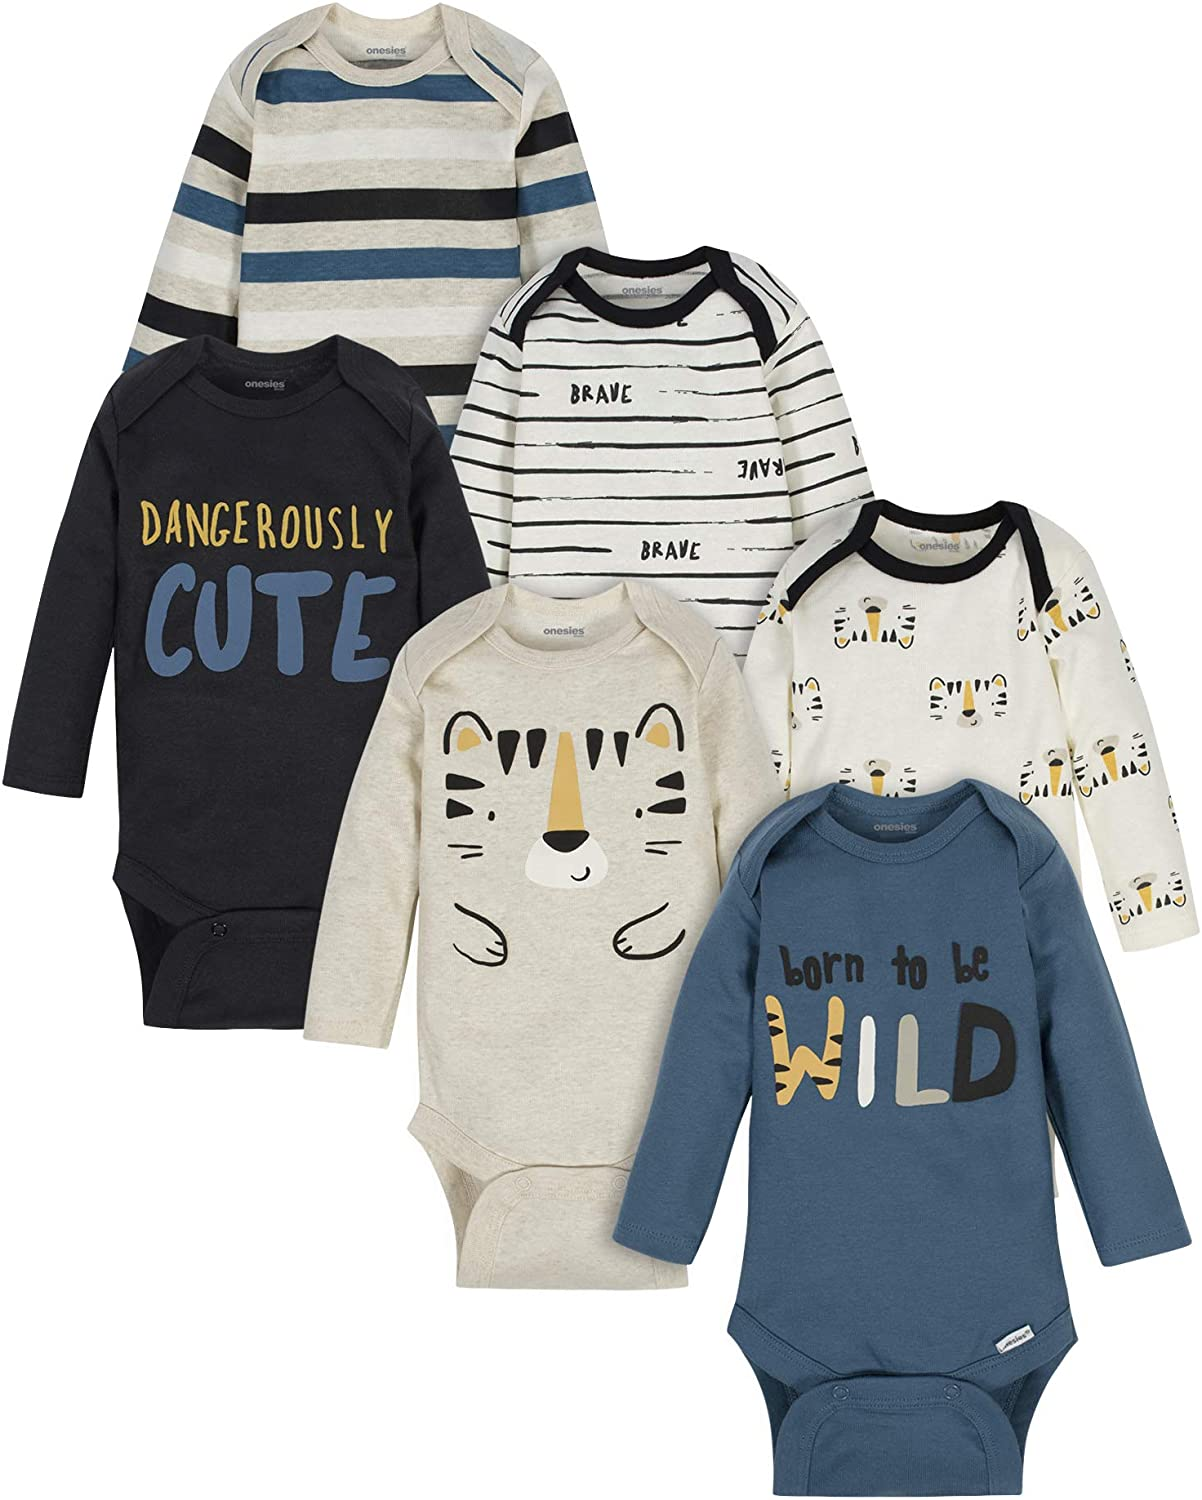 Onesies Brand baby-boys 6-pack Long Sleeve Bodysuits: Clothing, Shoes & Jewelry